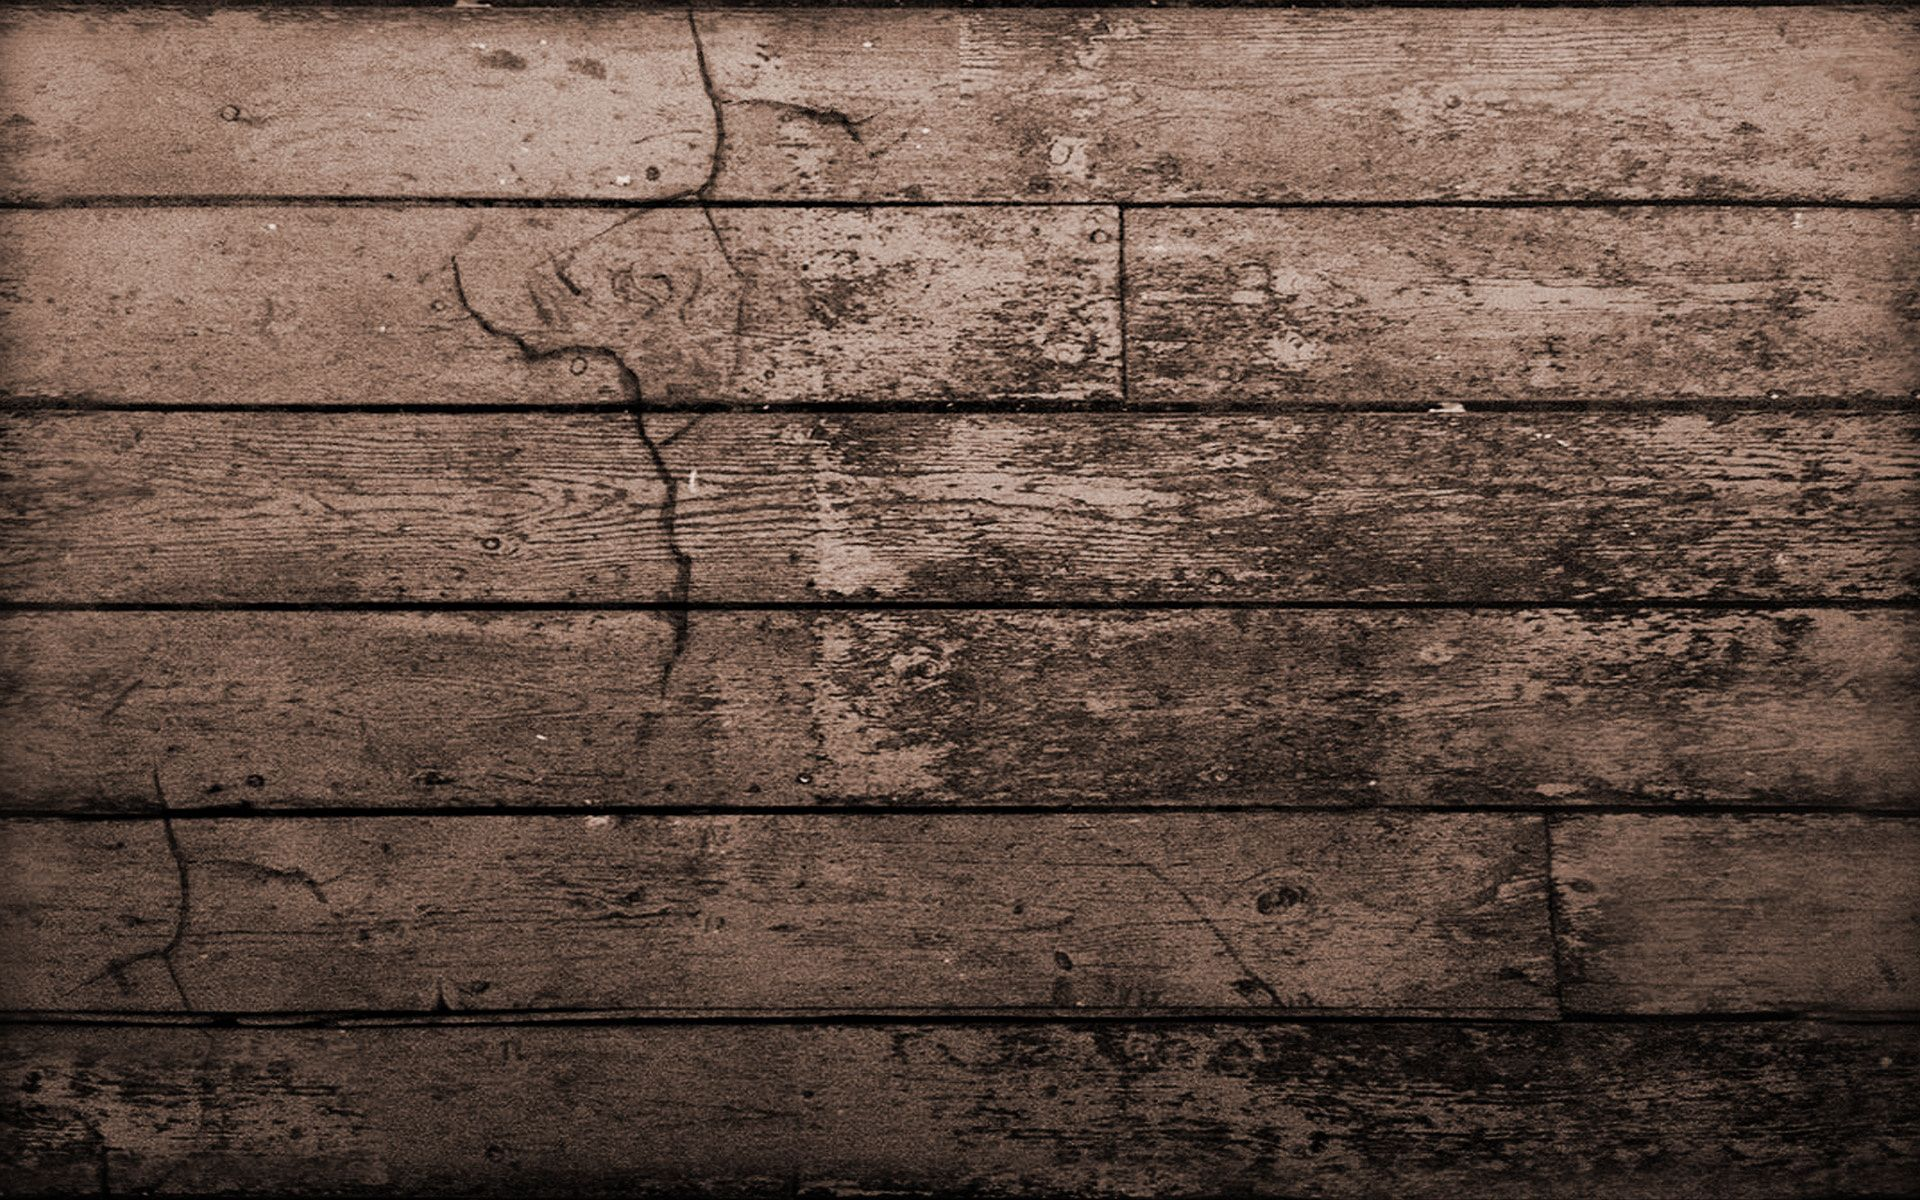 50 Hd Wood Wallpapers For Free Download: HD Wood Wallpapers For Free Download 1920×1080 Wood